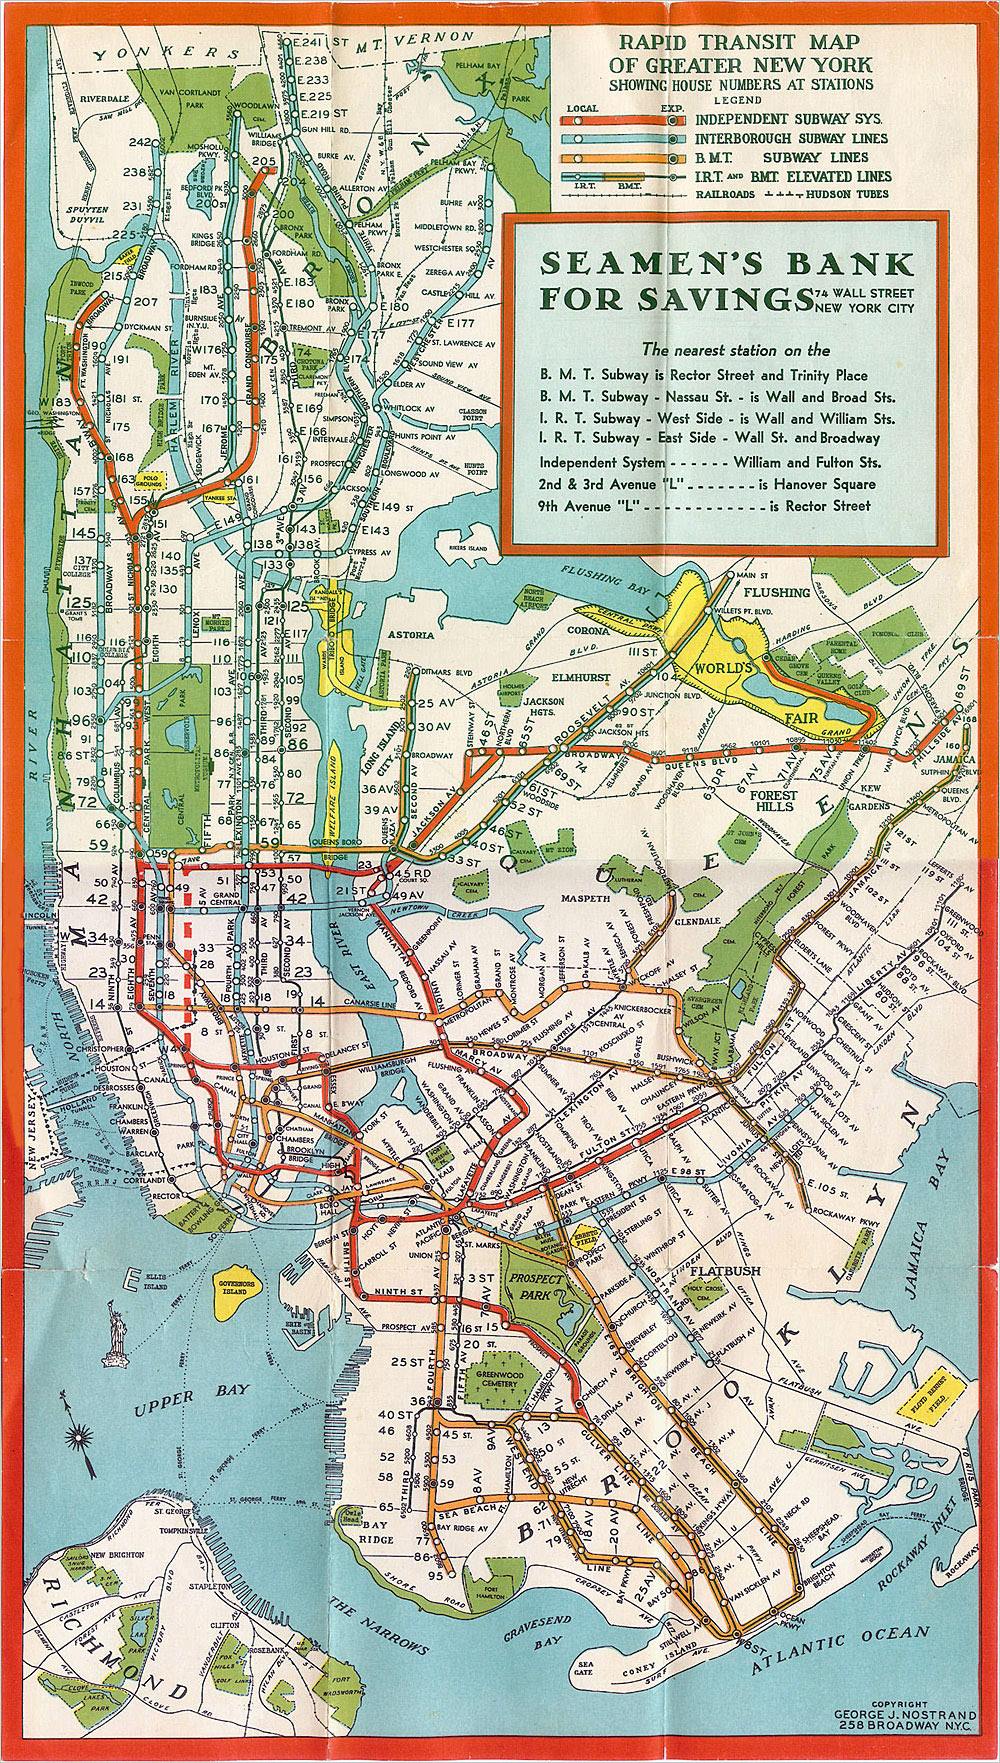 Subway Map New York Manhatten.Manhattan New York Subway Map 1930 Subway Map Of Manhattan New